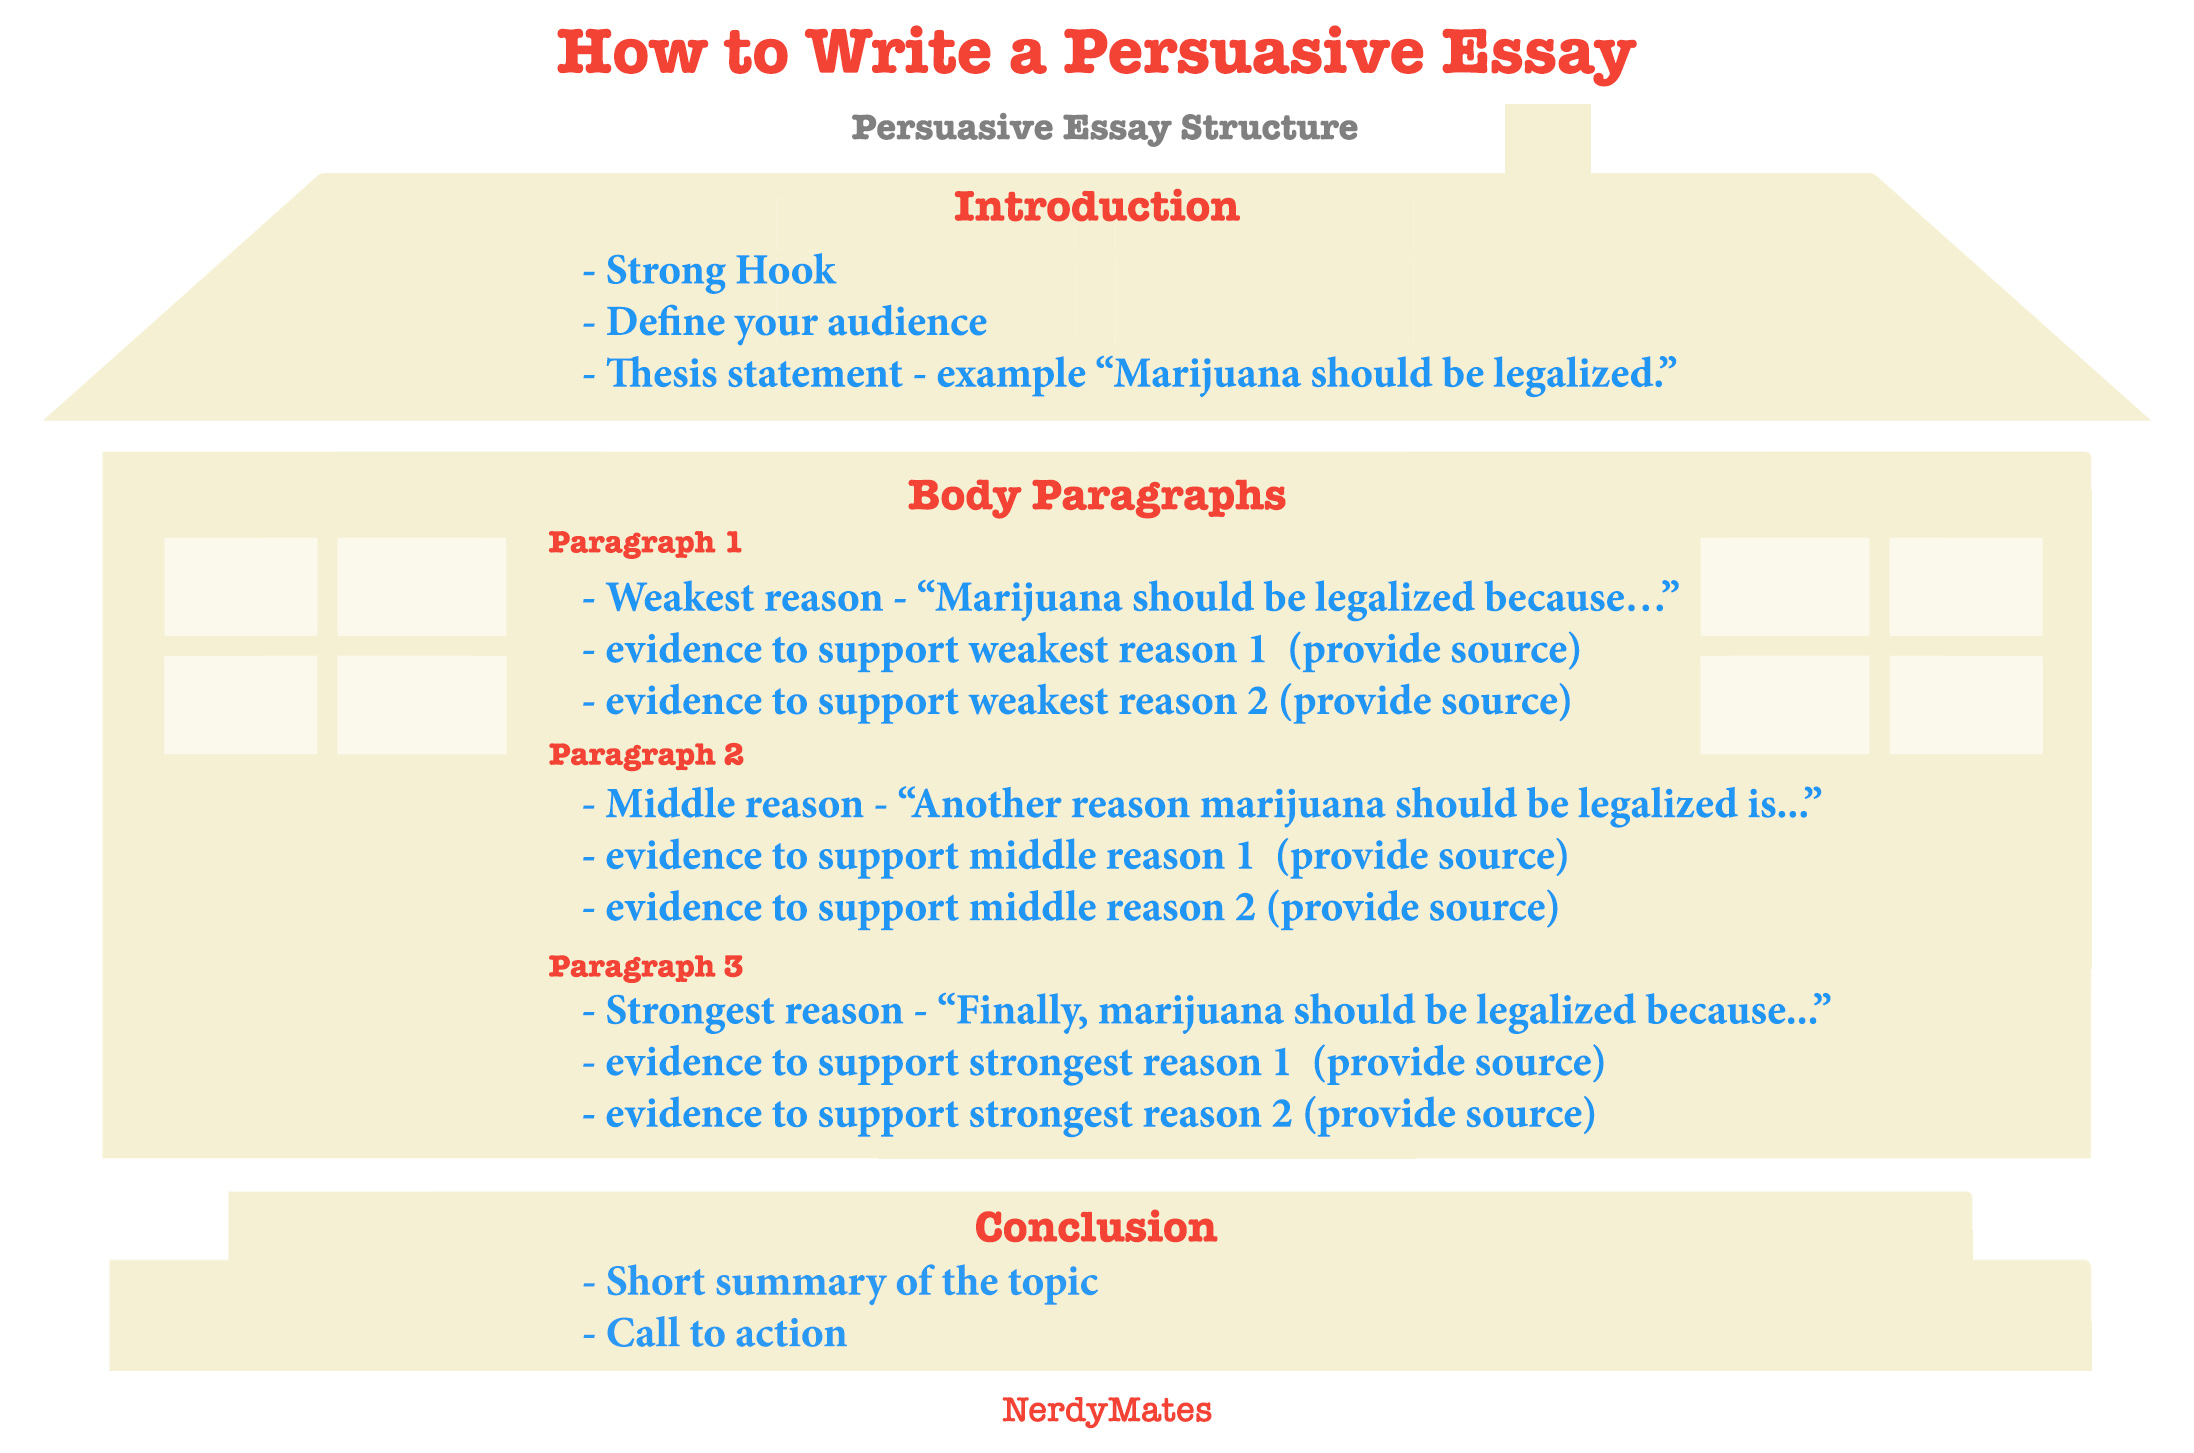 How To Write An Essay For High School Do You Want To Understand How To Write A Persuasive Essay In Details  Observe The Structure Of The Examples Of Students Best Works And Review    High School And College Essay also Essay For High School Application How To Write A Persuasive Essay To Make People Believe You  Essay On Photosynthesis